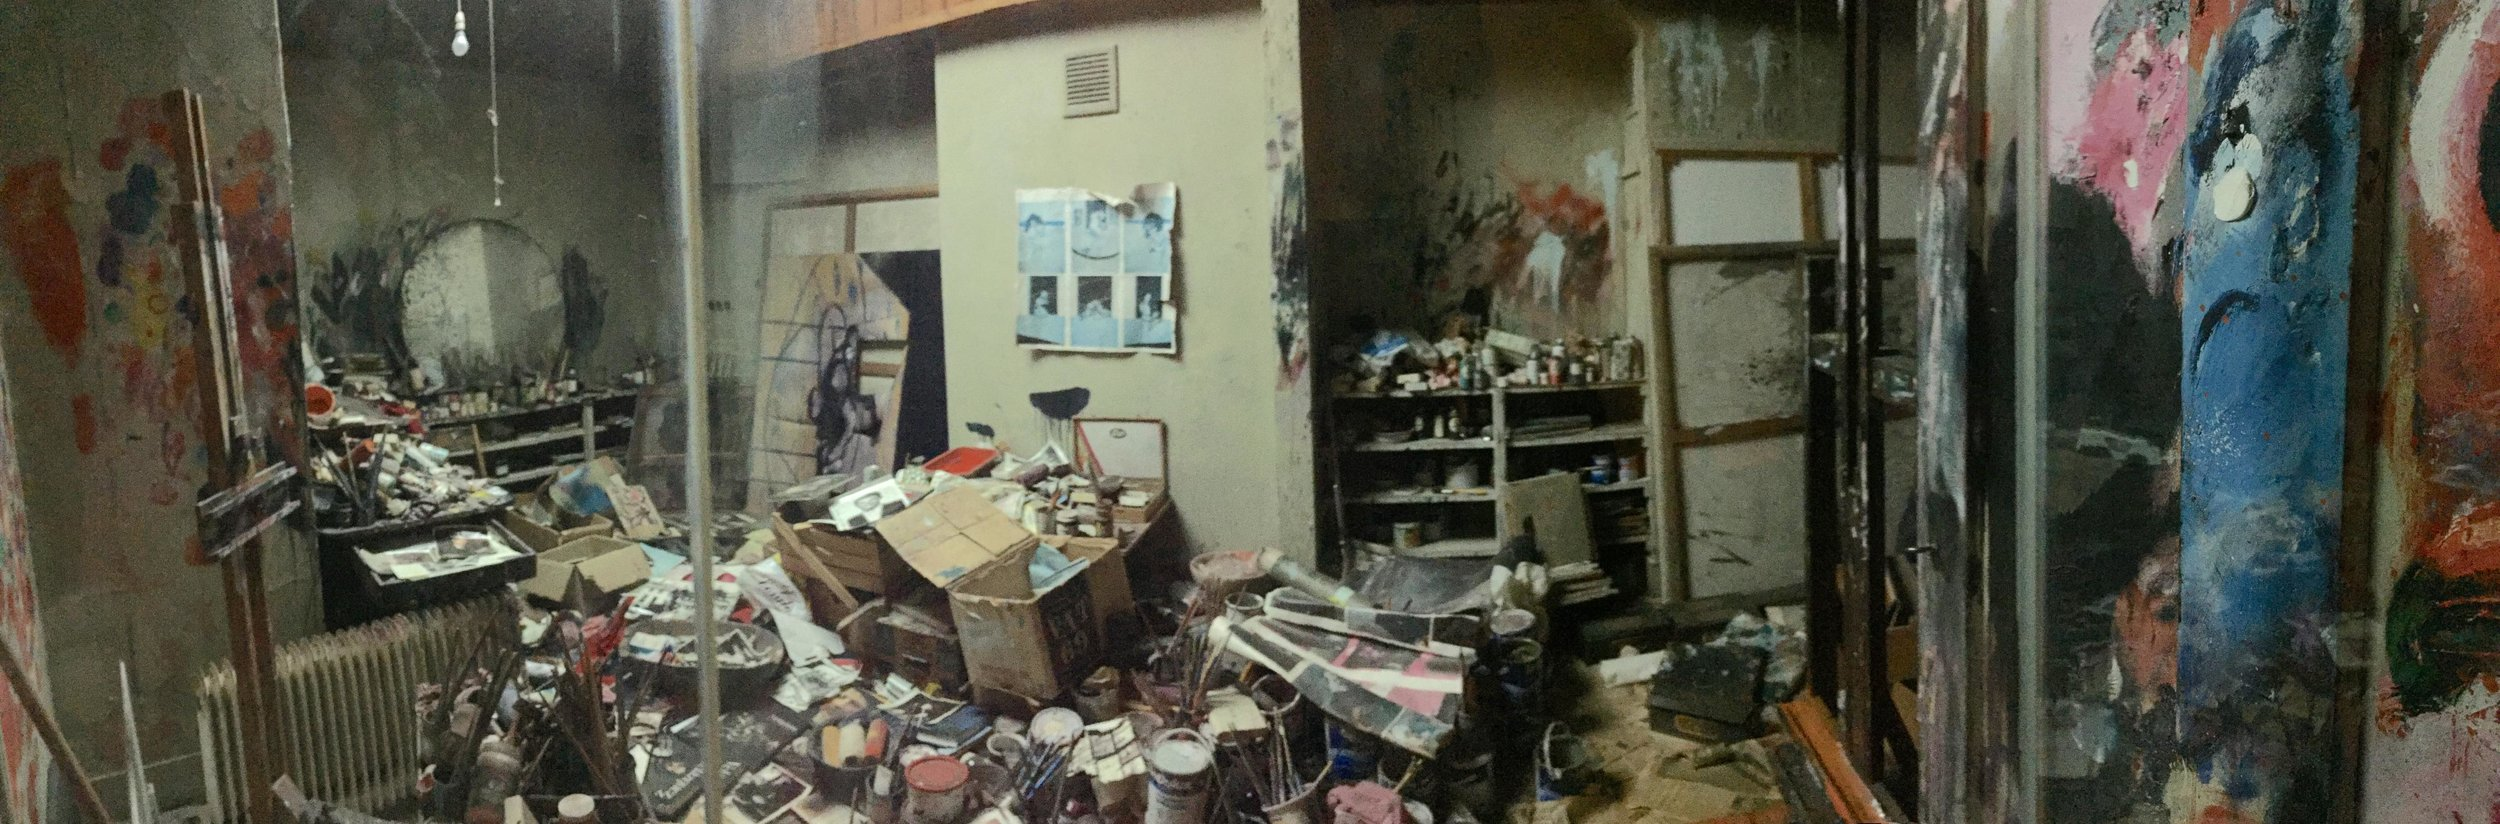 The chaos of Francis Bacon's studio  in the Hugh Lane Gallery